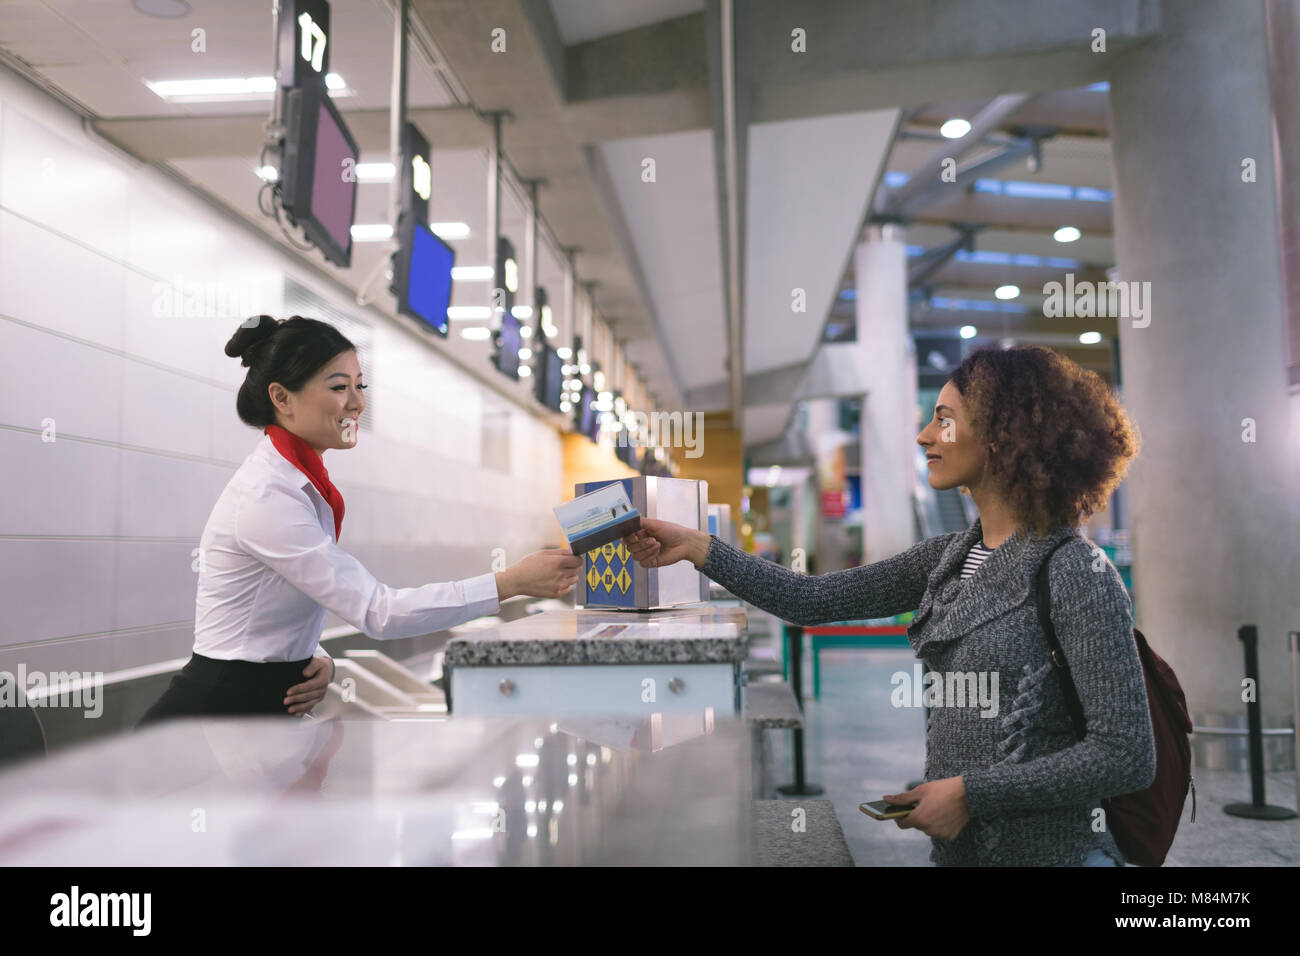 Airline check-in attendant handing passport to commuter - Stock Image